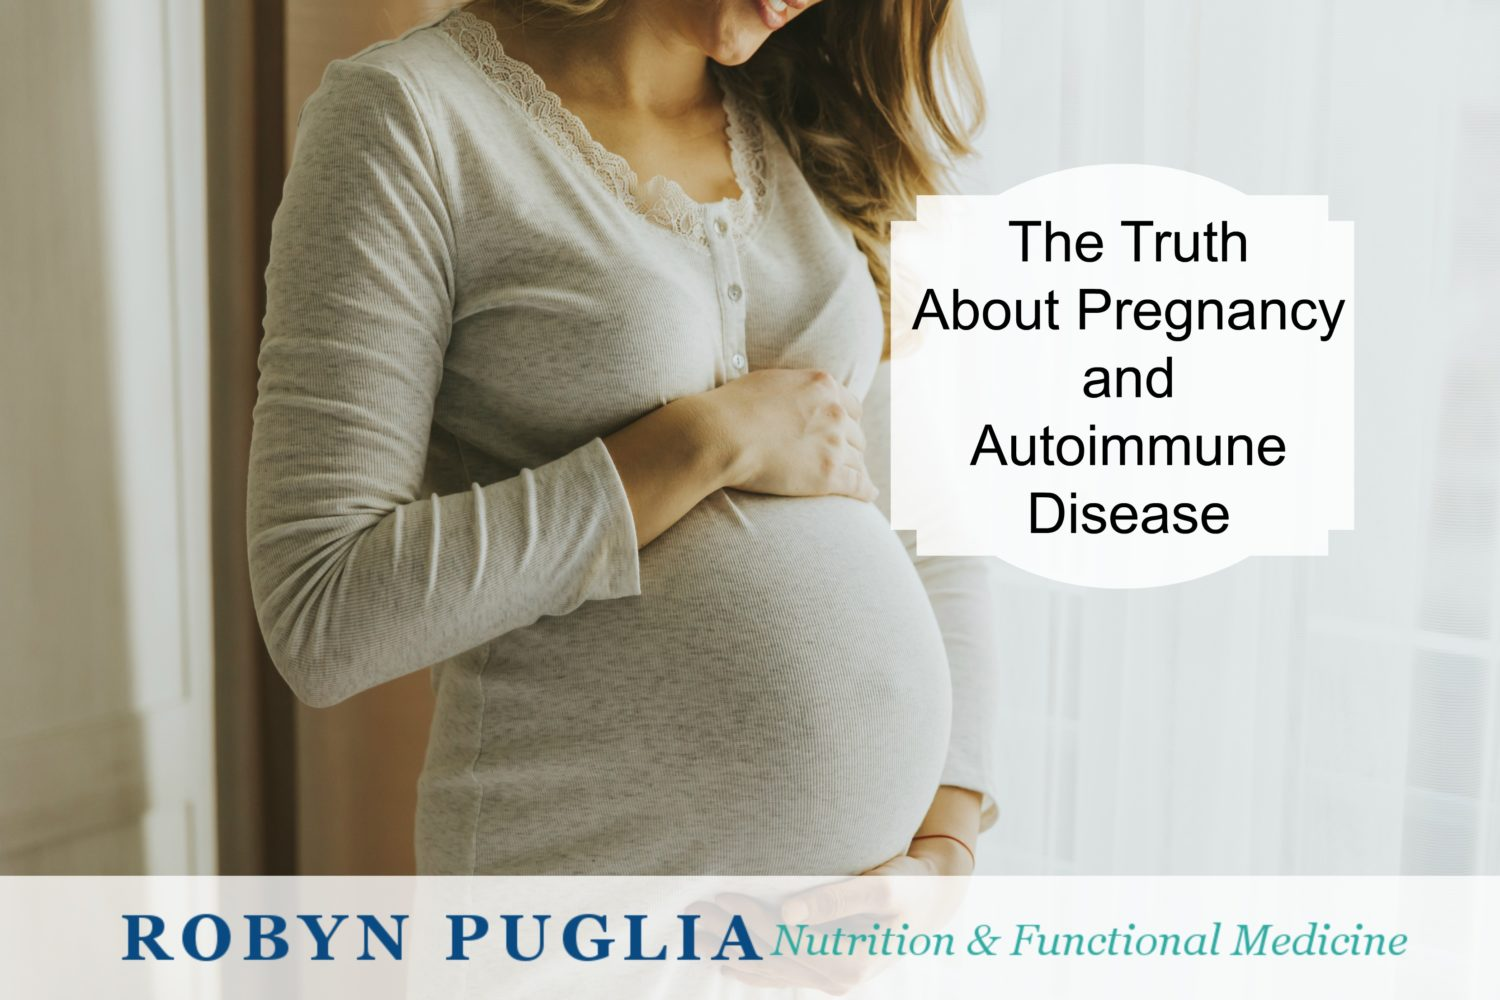 The Autoimmune Pregnancy